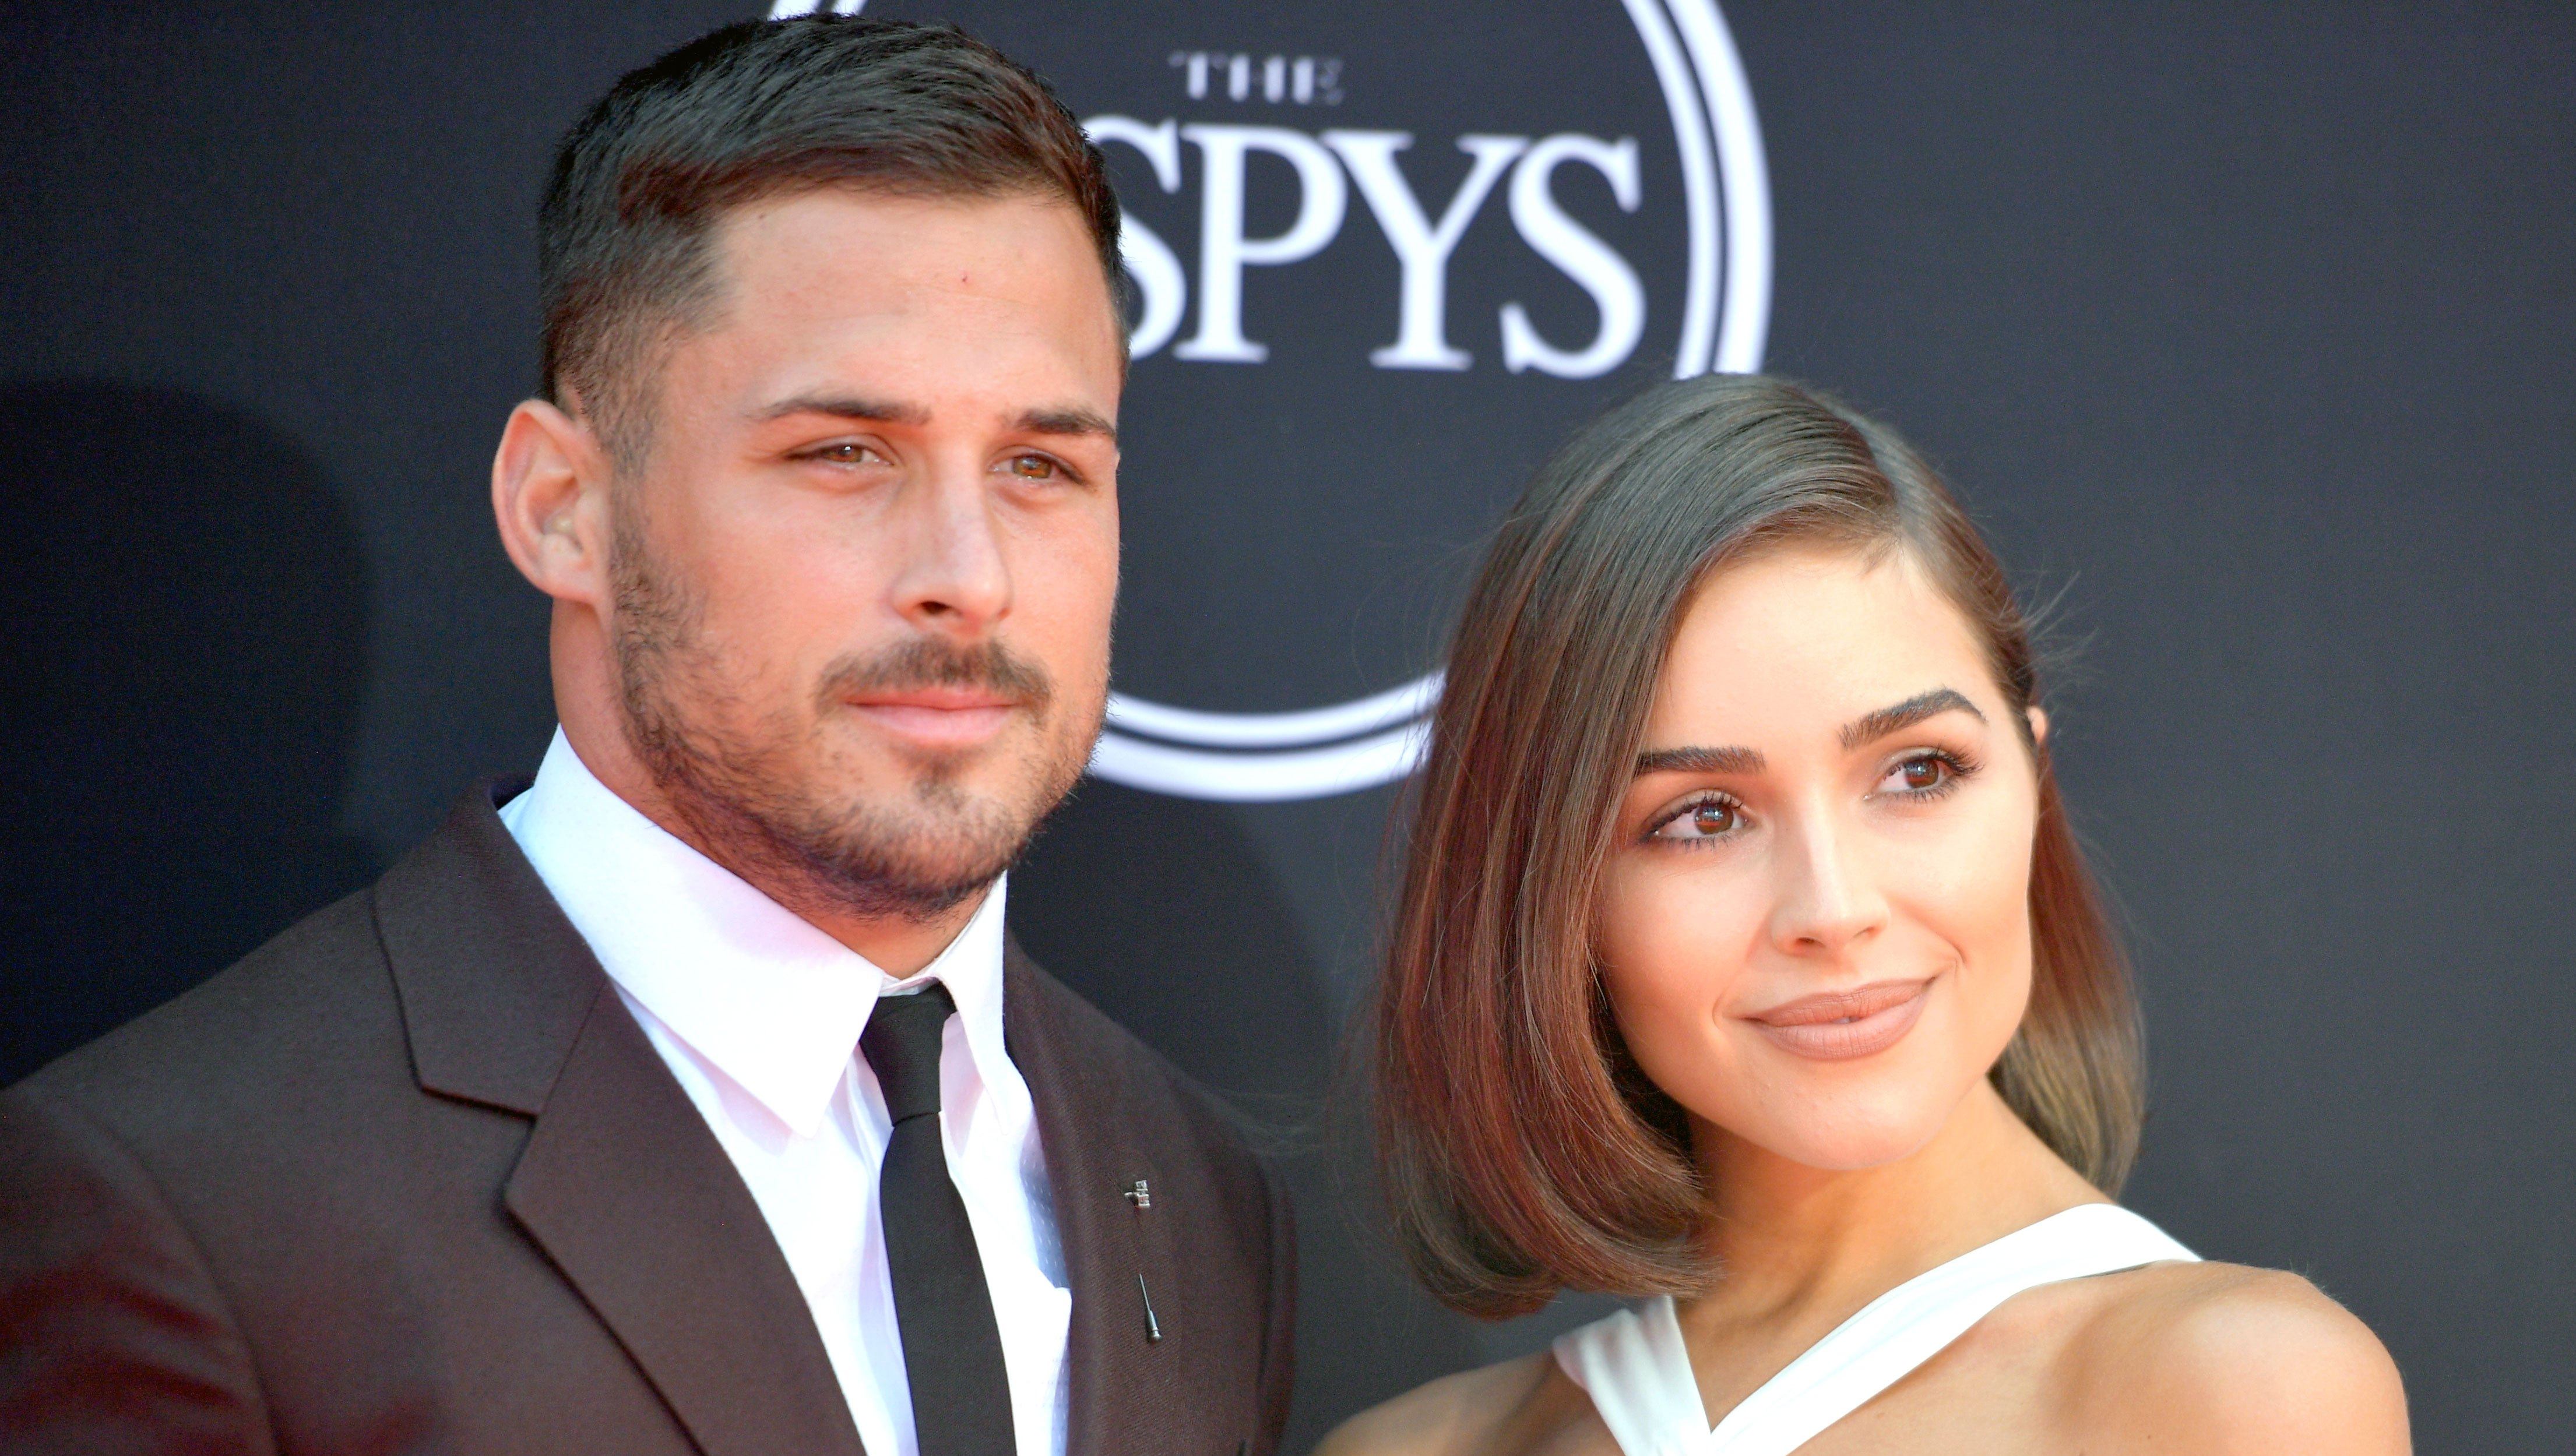 Danny Amendola Writes Cryptic Post After Dissing Ex Olivia Culpo: 'People Won't Often Remember What You Said'